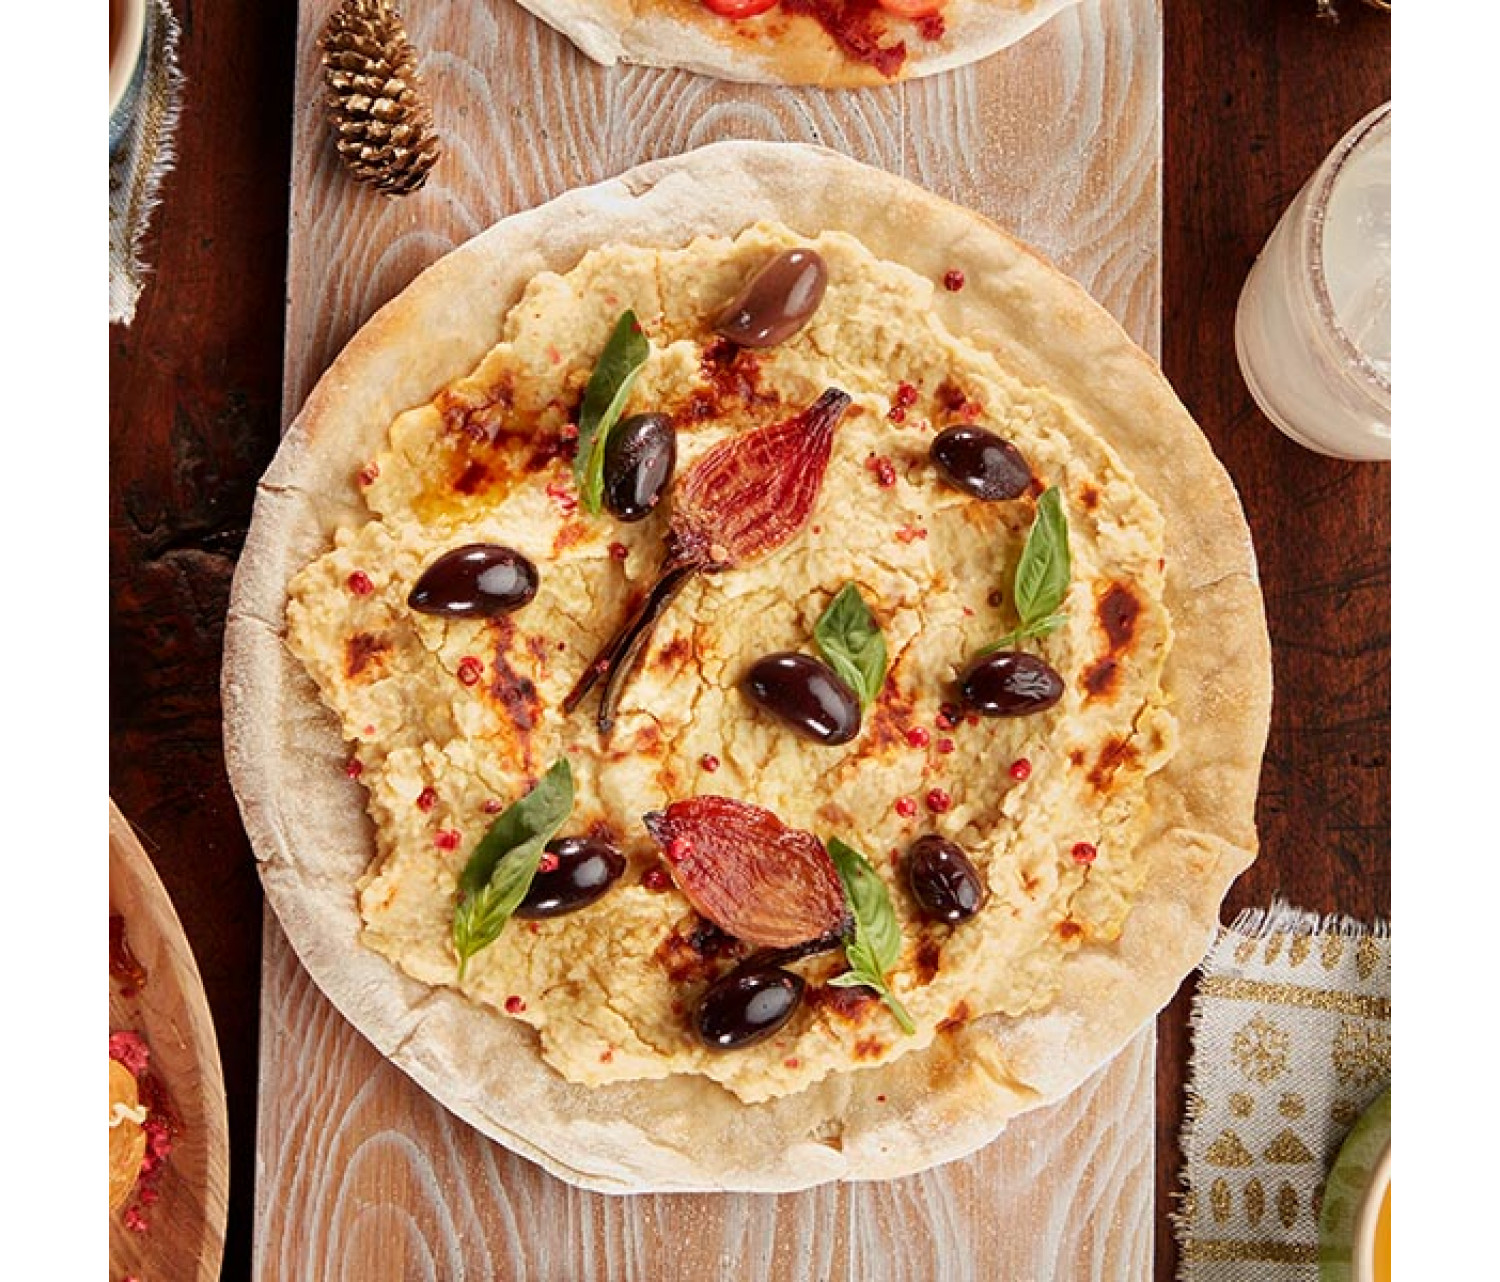 PIZZA D'HUMMUS